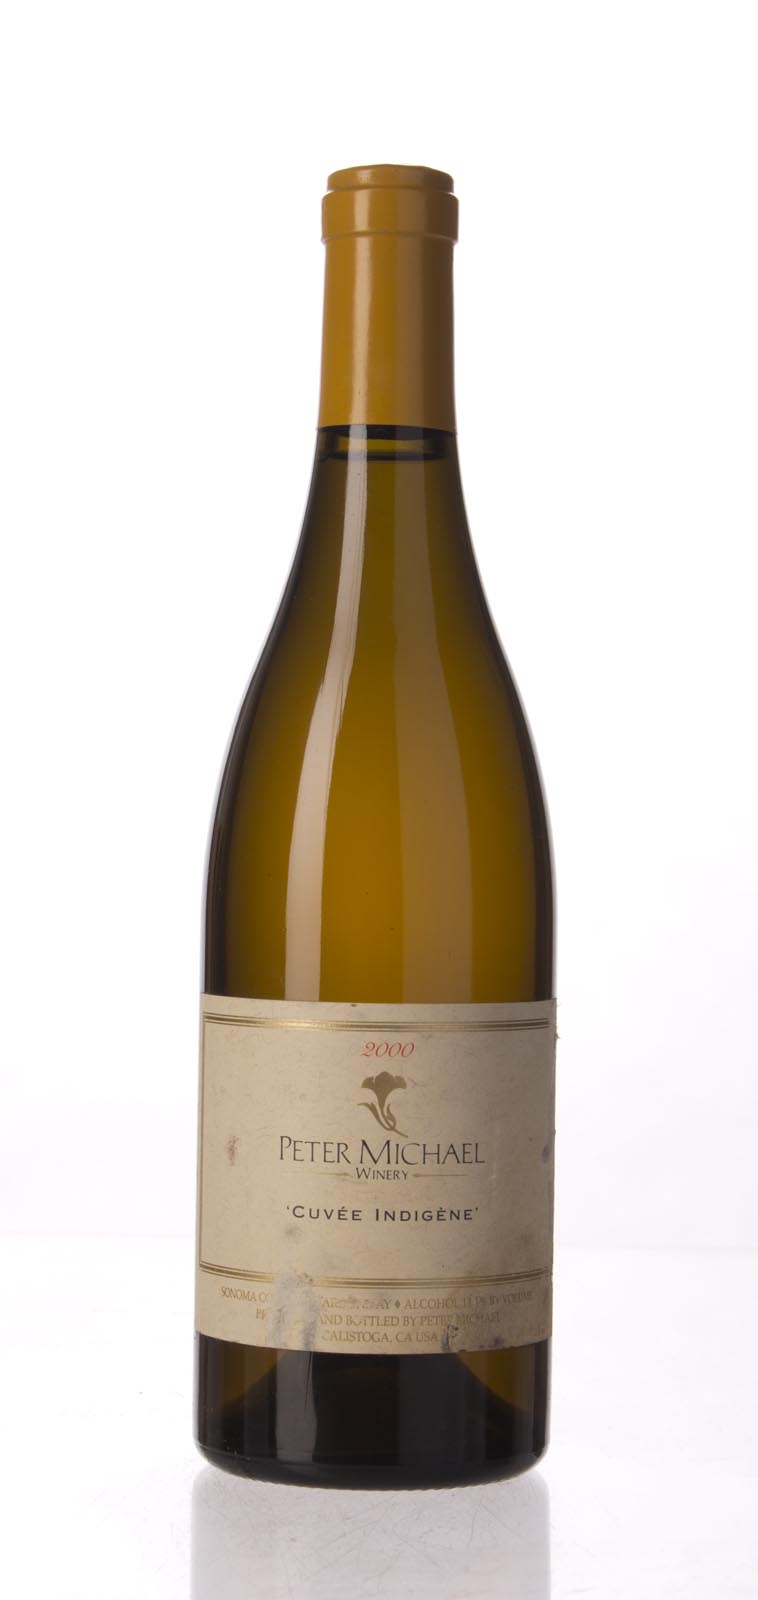 Peter Michael Winery Chardonnay Cuvee Indigene 2000, 750mL (ST92) from The BPW - Merchants of rare and fine wines.